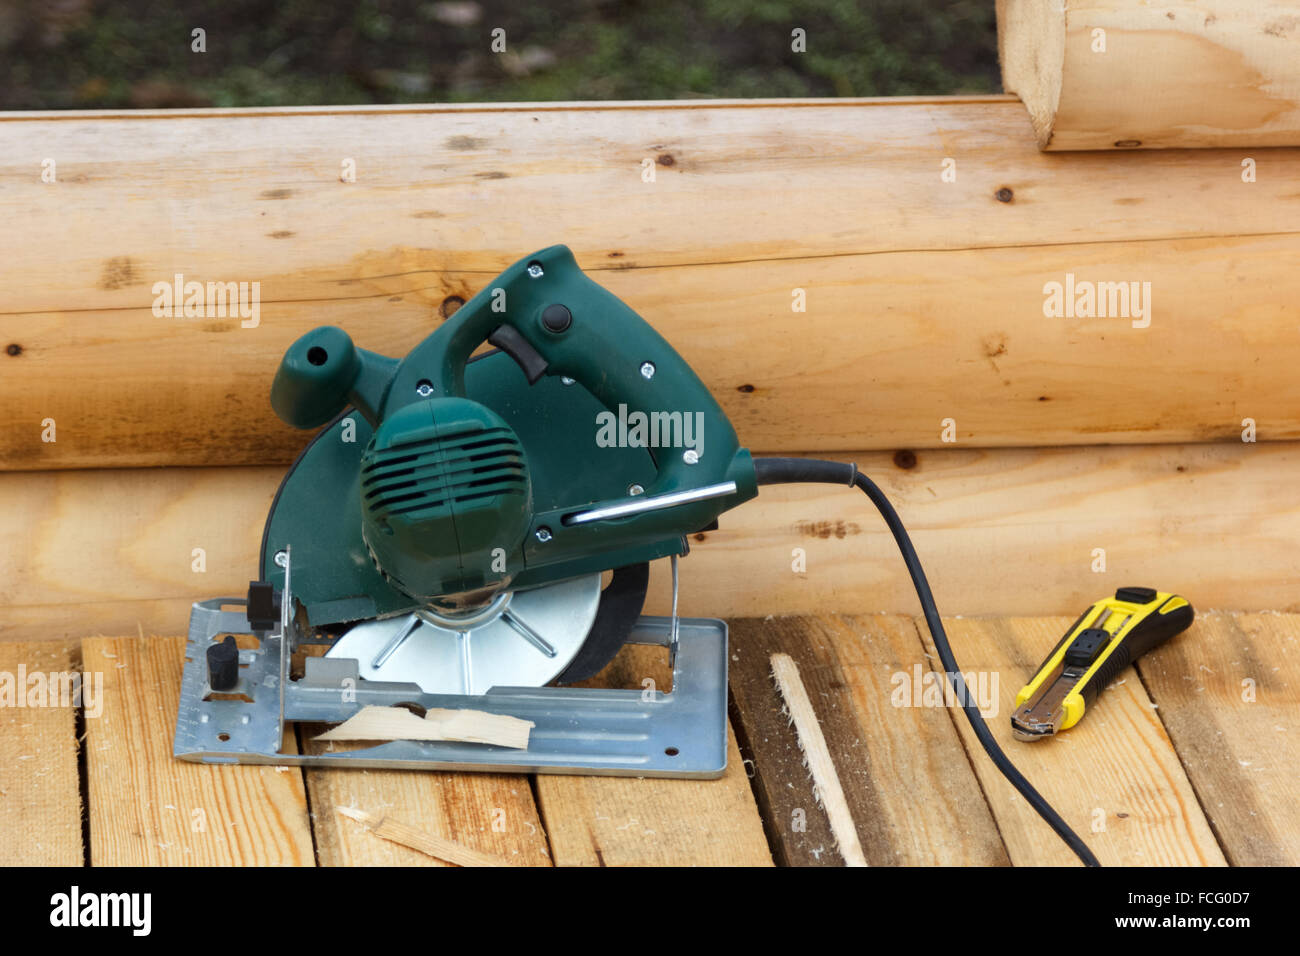 electric circular saw and a knife on a wooden platform Stock Photo